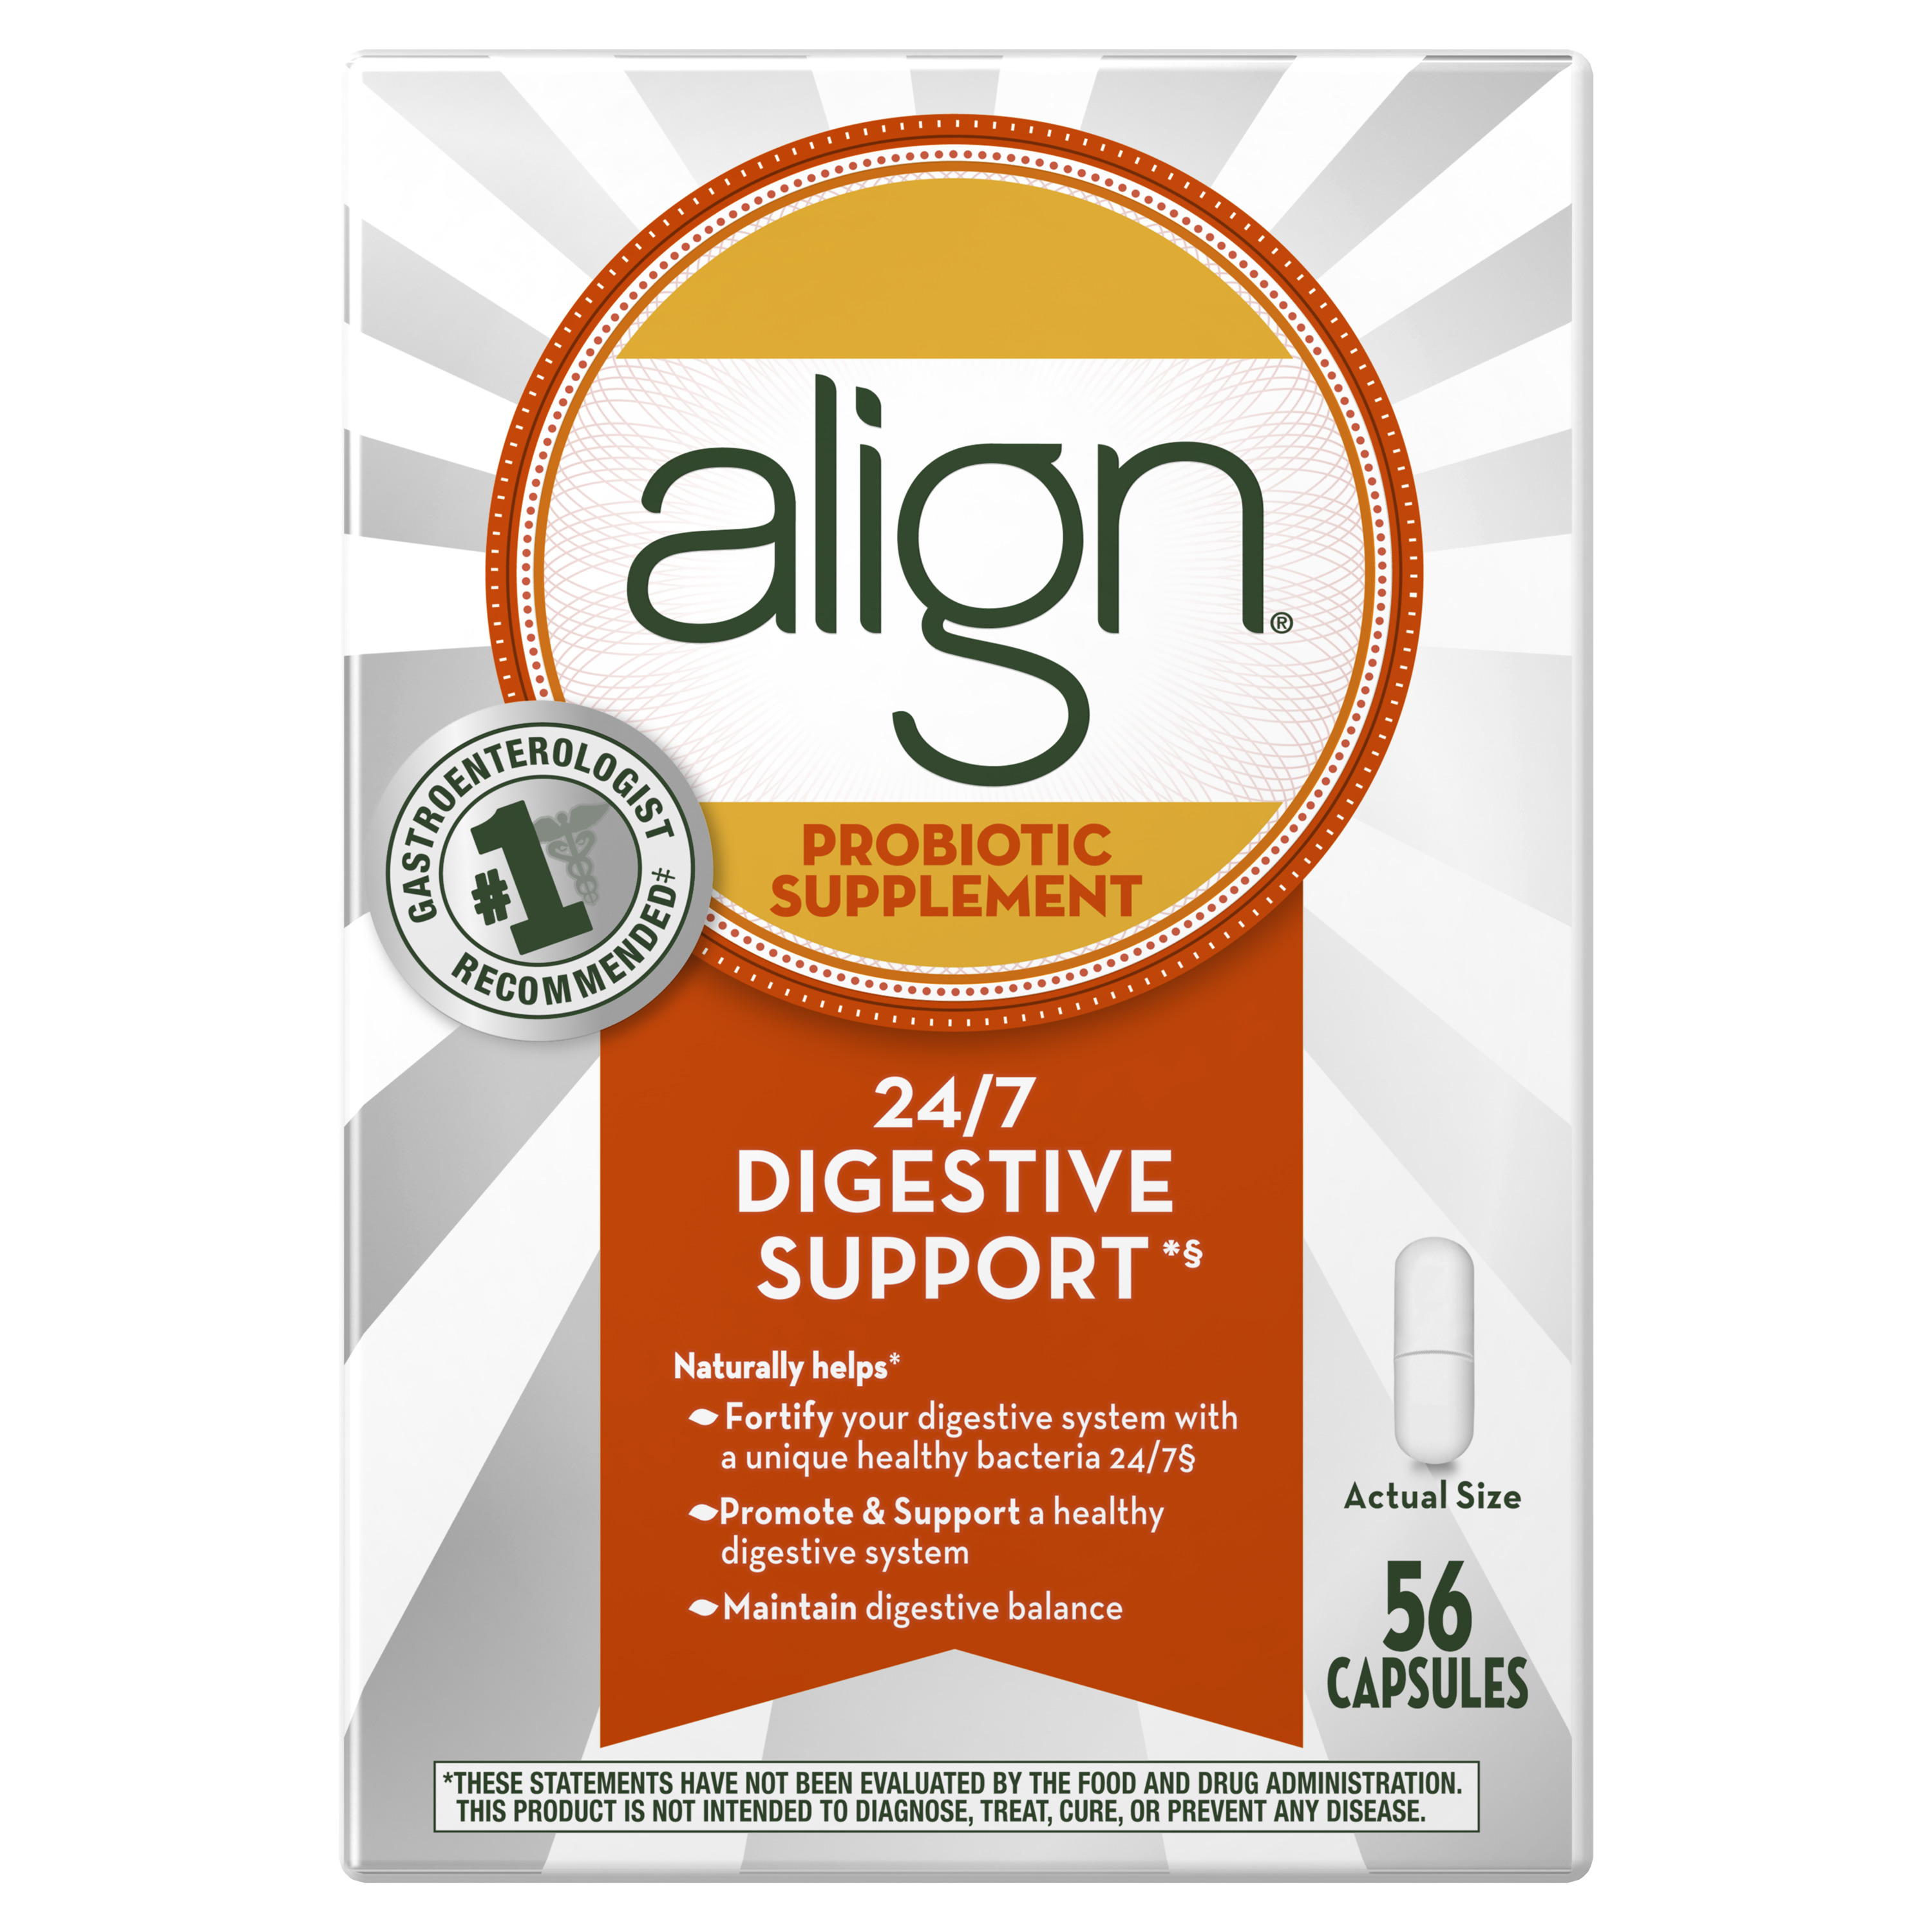 Align Probiotics, Probiotic Supplement for Daily Digestive Health, 56 capsules, #1 Recommended...